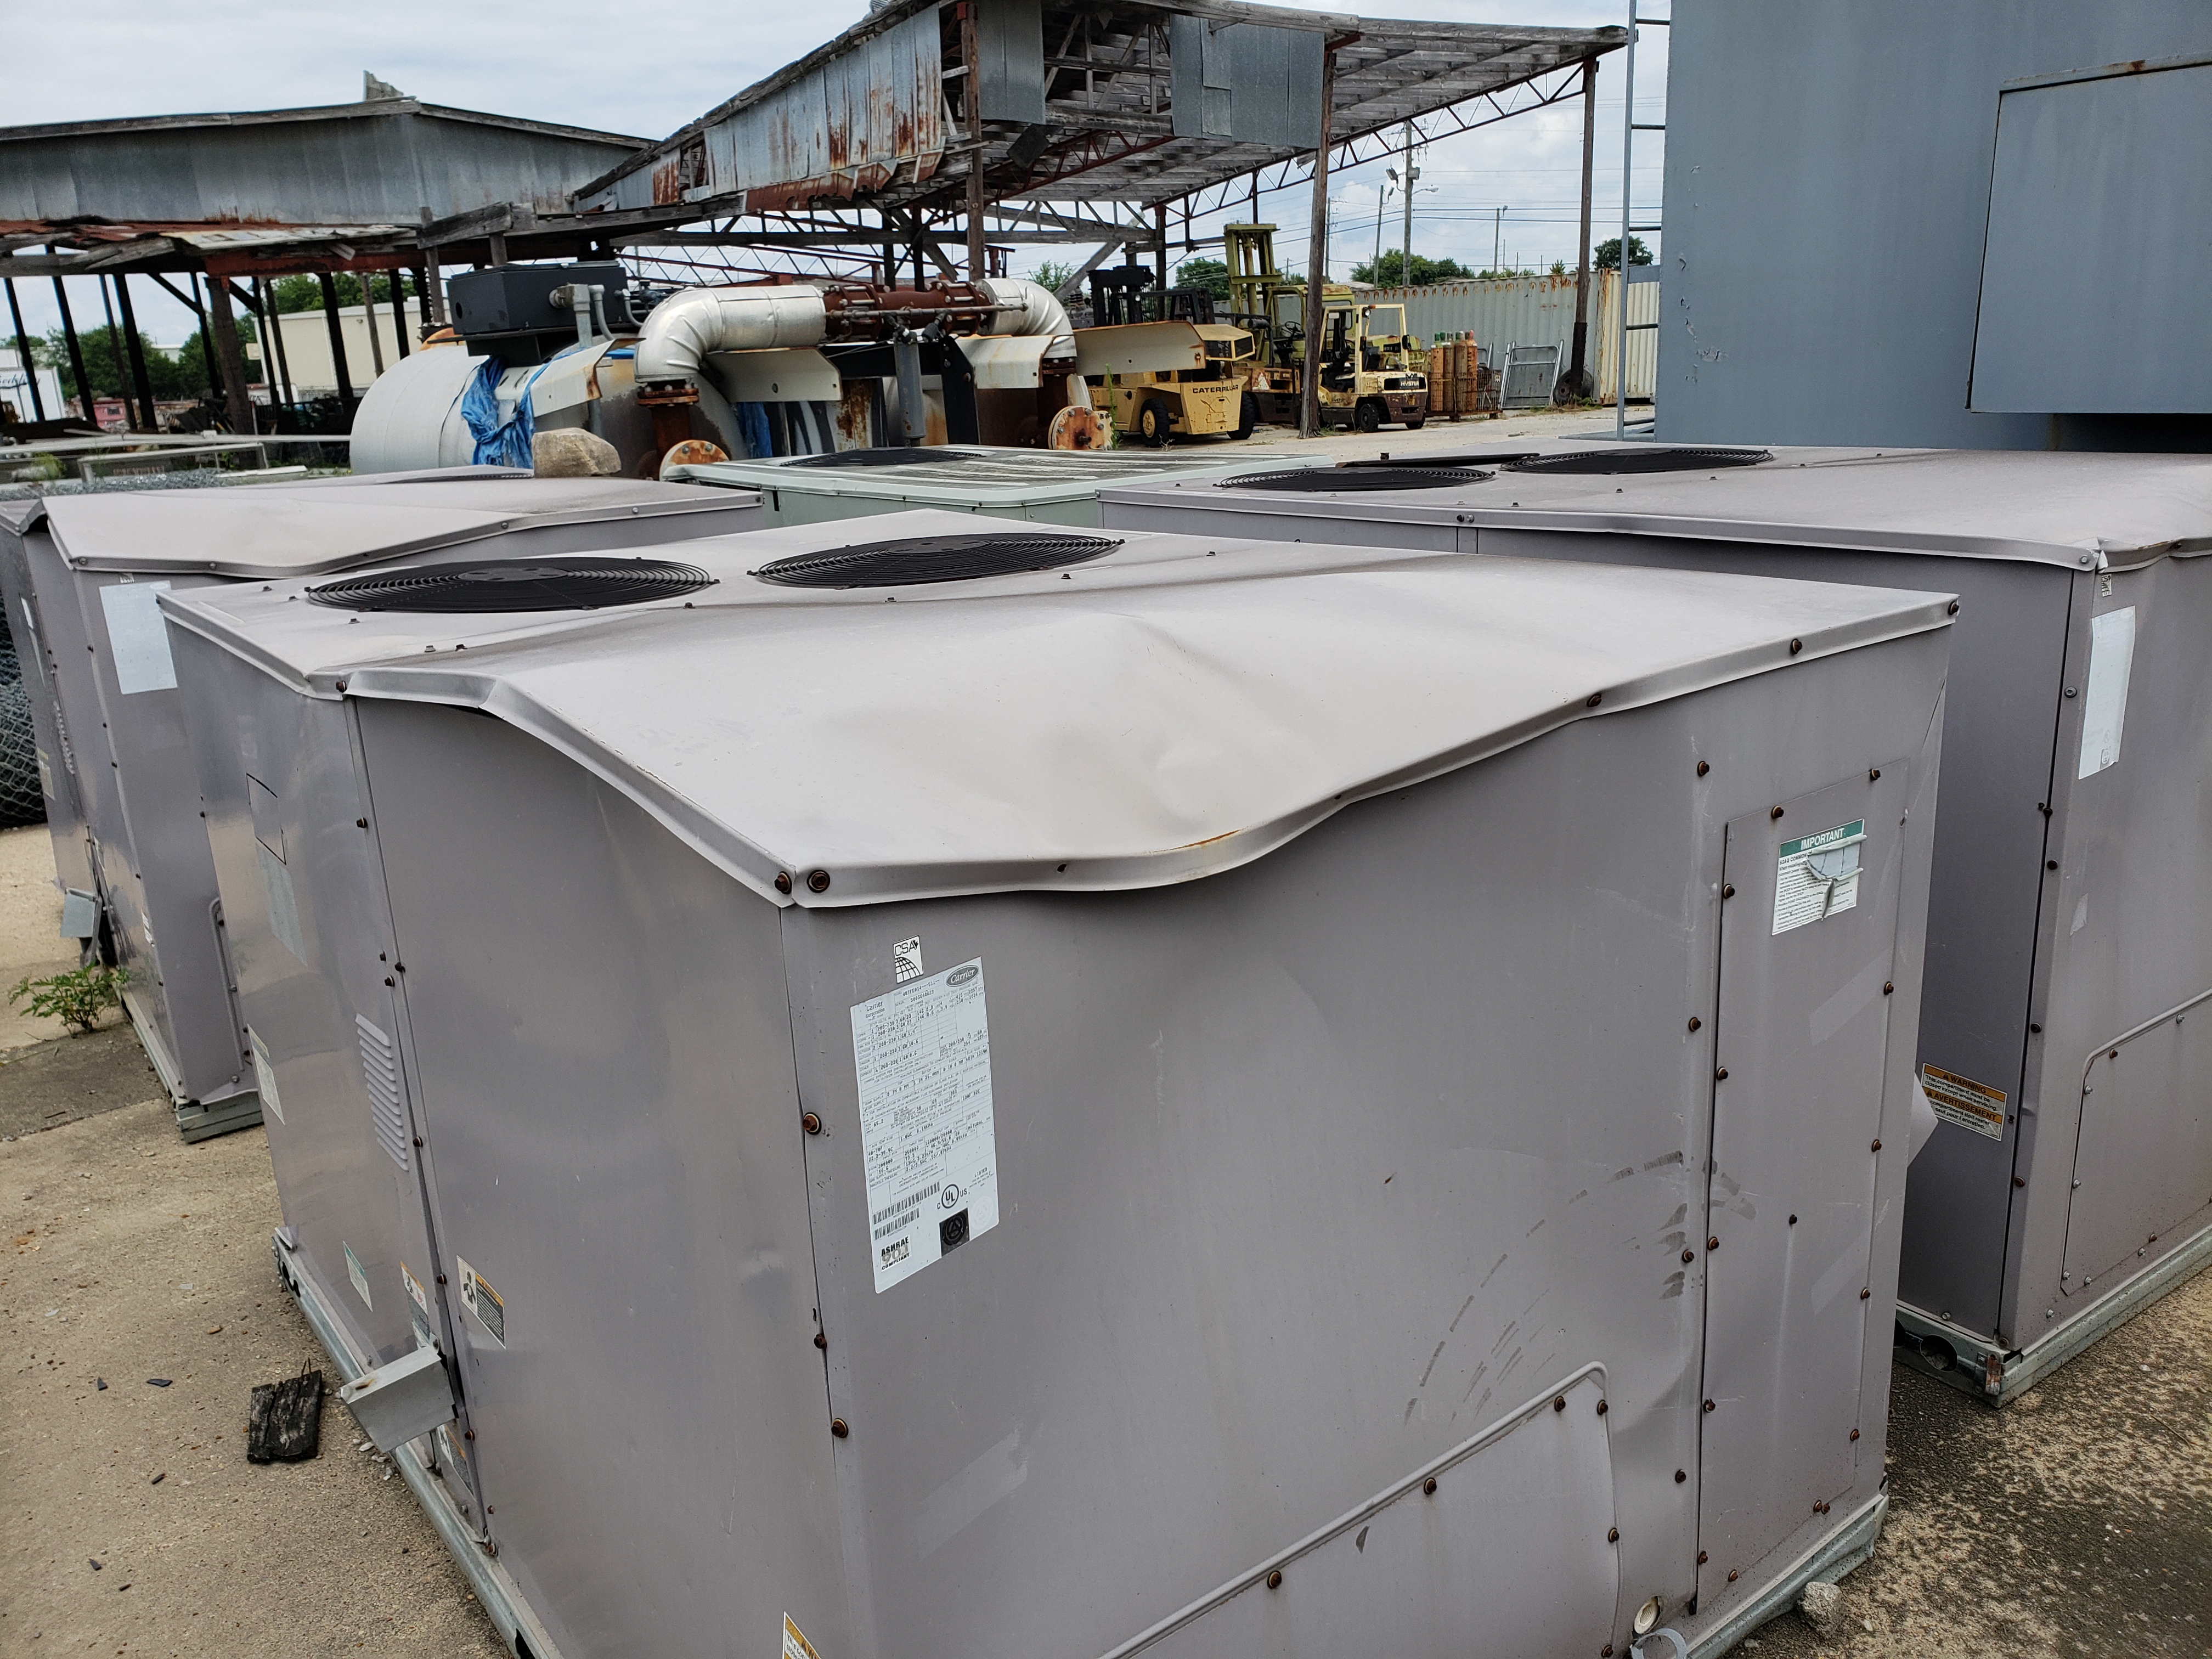 Carrier 12.5 Ton A/C Unit